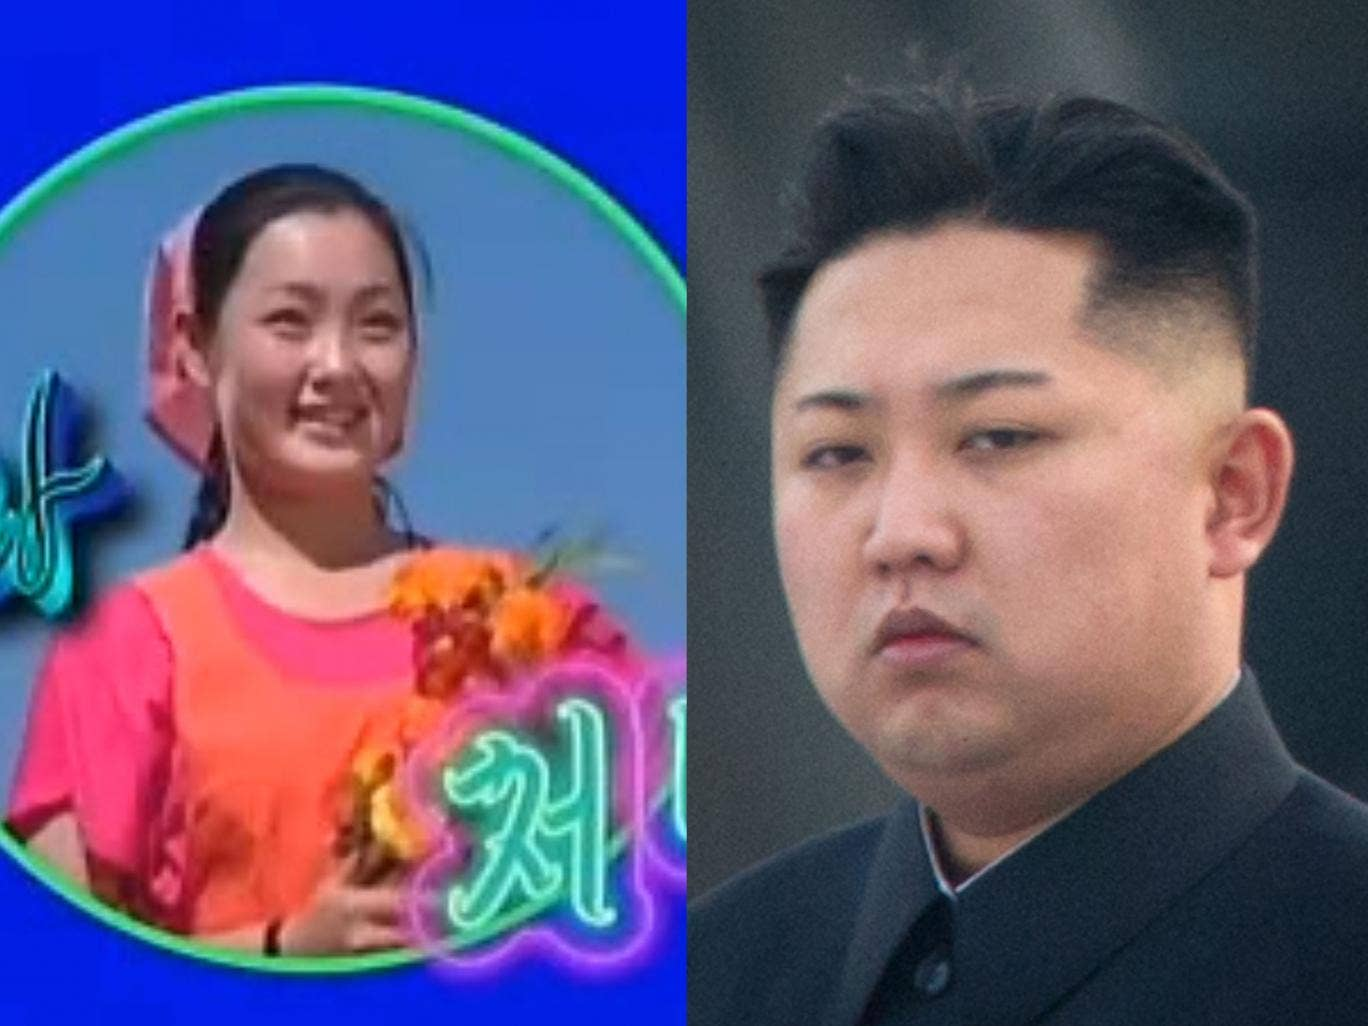 North Korean dictator Kim Jong-un and his former lover Hyon Song-wol, as she appeared in a hit music video, who is reported to have been executed by firing squad